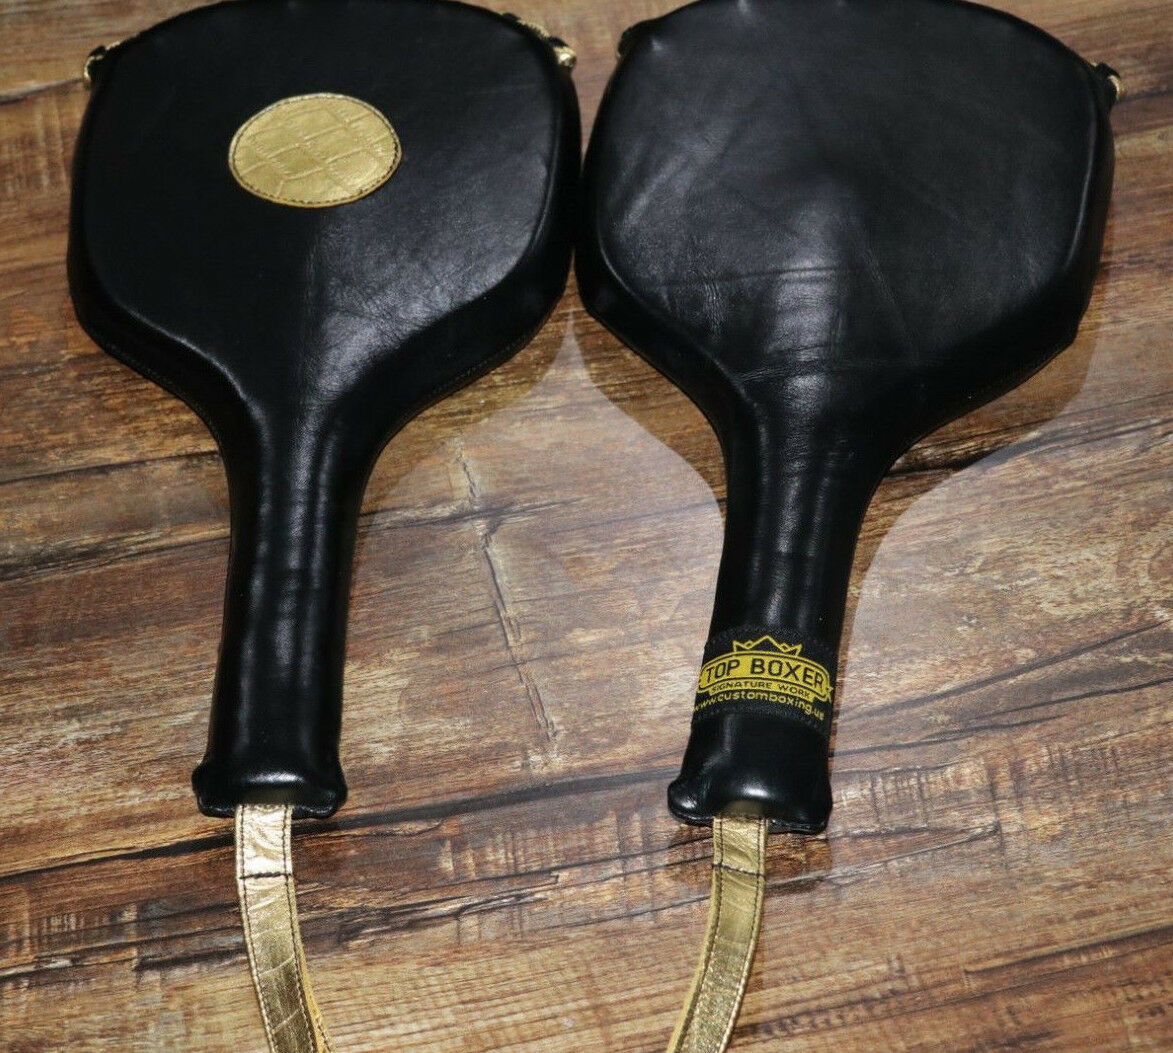 TopBoxer Punch Paddles Winning Winning Paddles Style ead840